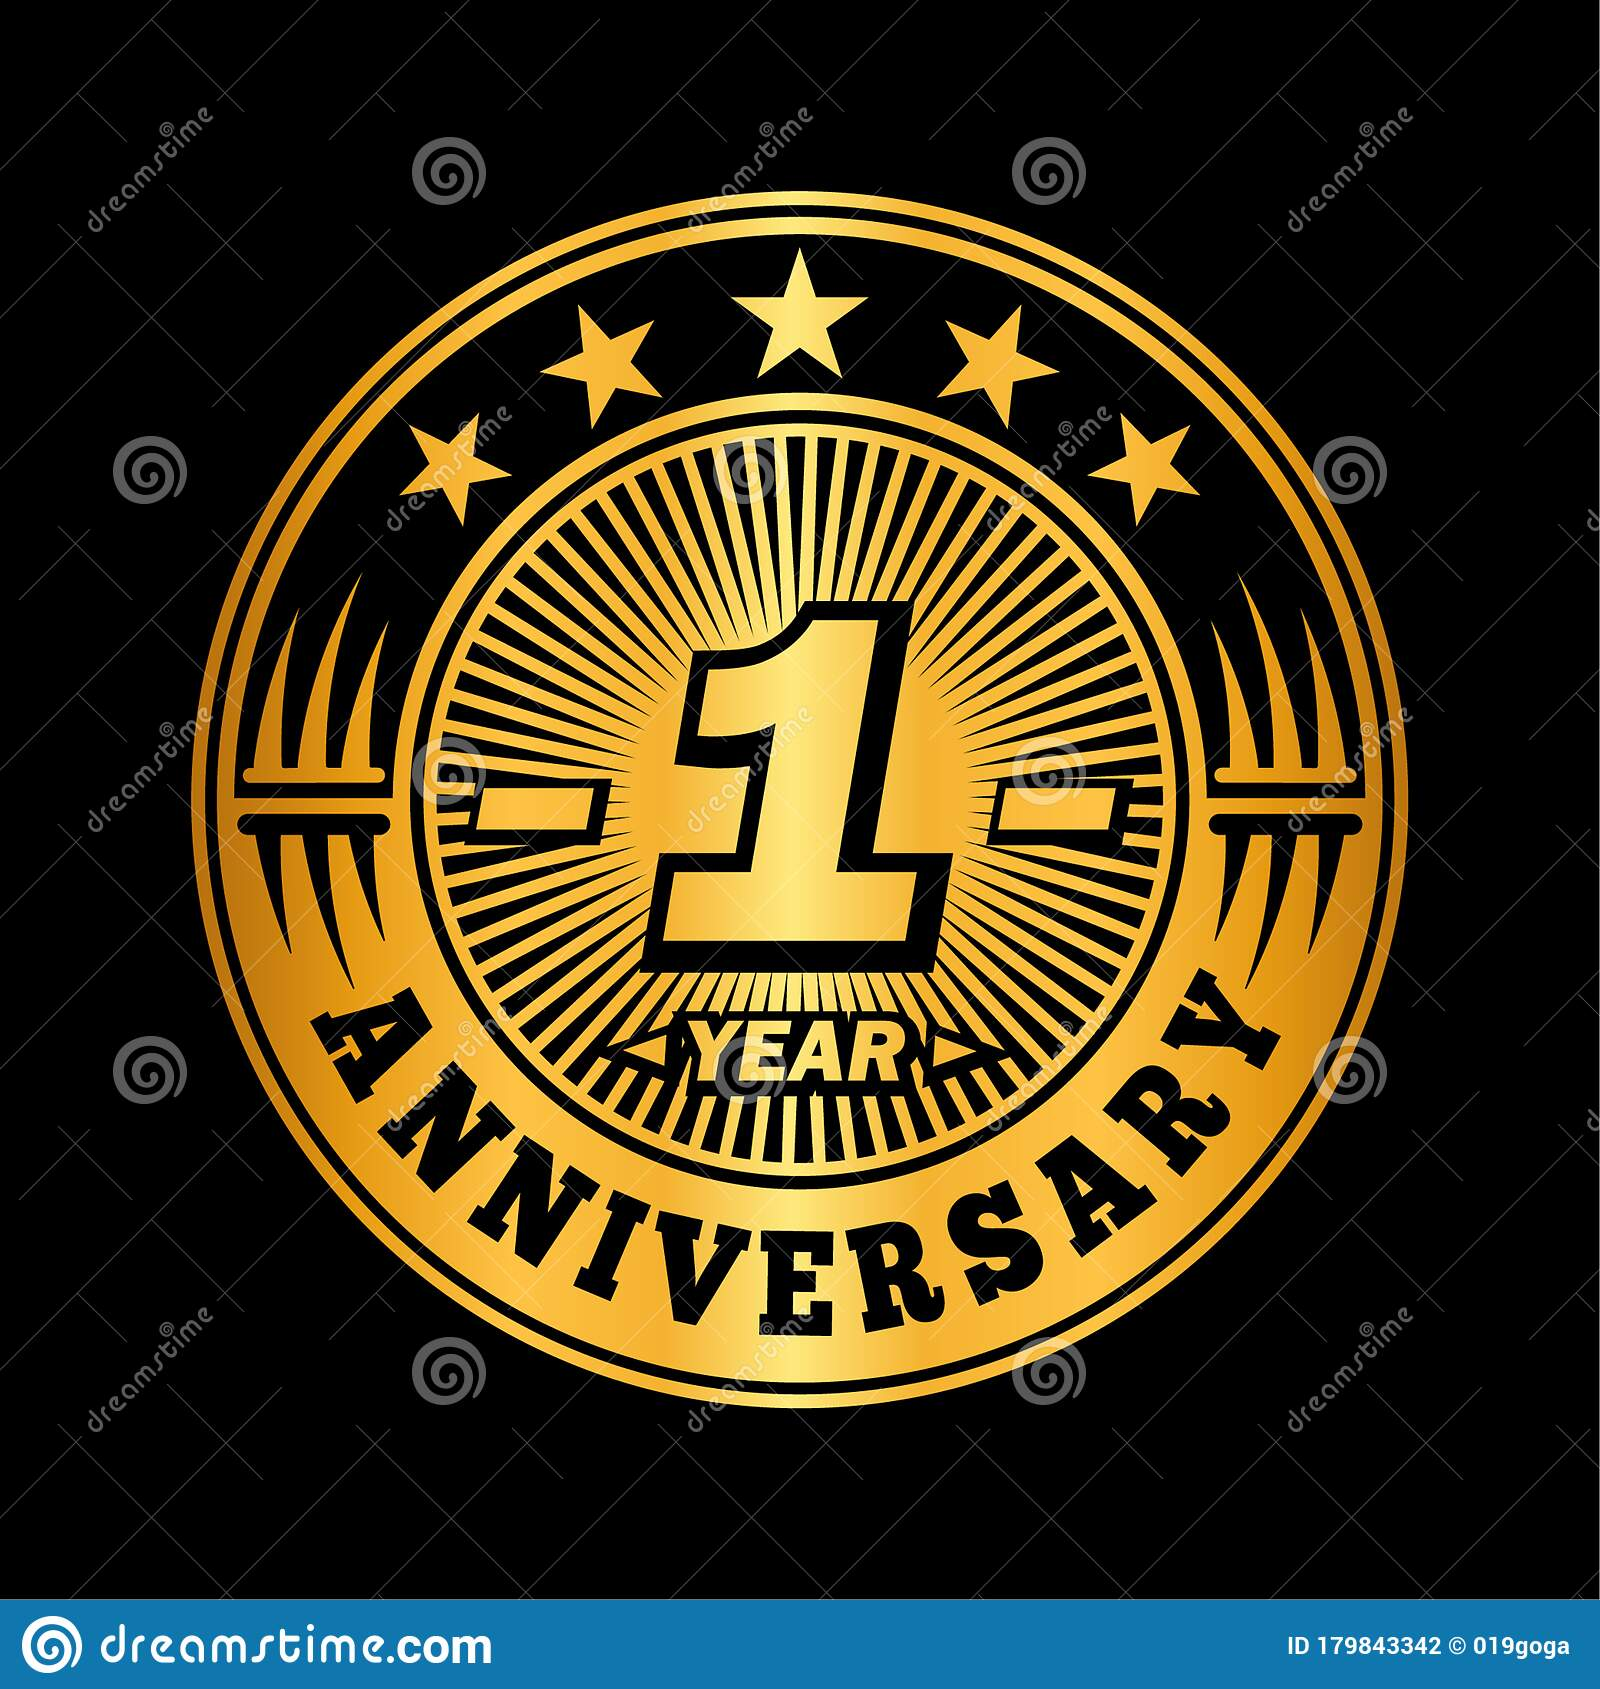 1 year anniversary celebration 1st anniversary logo design one year logo stock vector illustration of invitation celebrating 179843342 dreamstime com